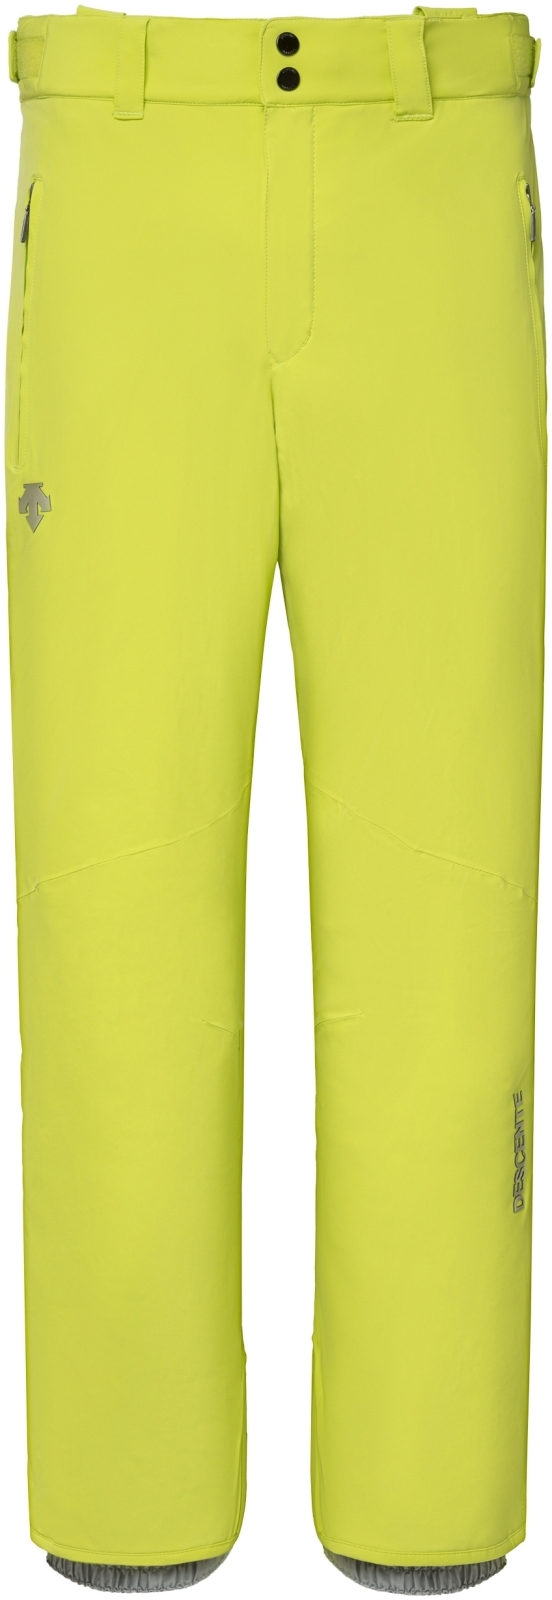 Descente Swiss Pants - lime green 54